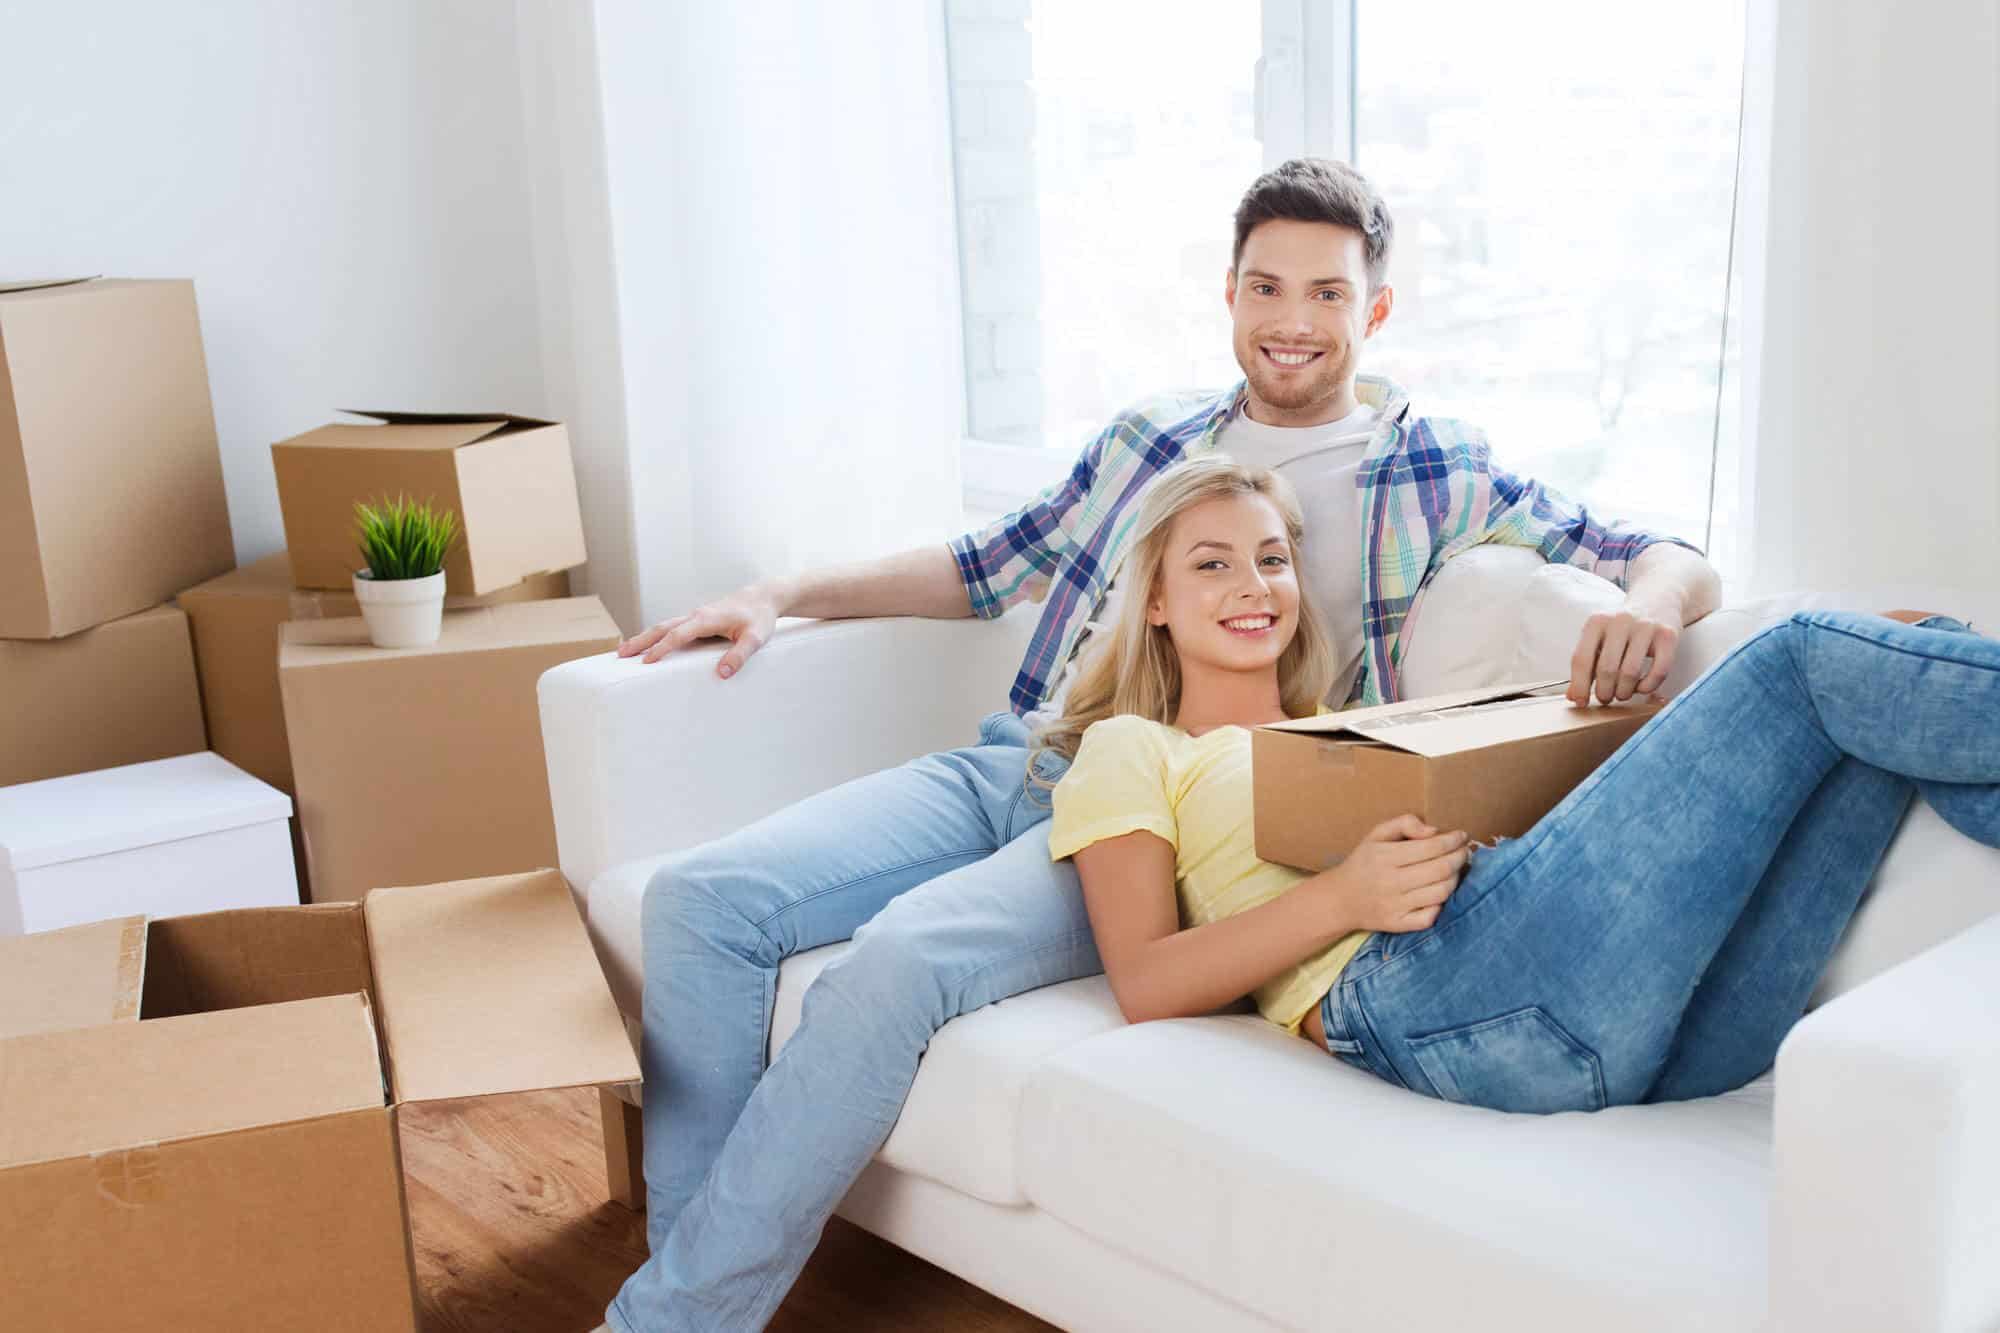 A couple sitting on the couch while unpacking